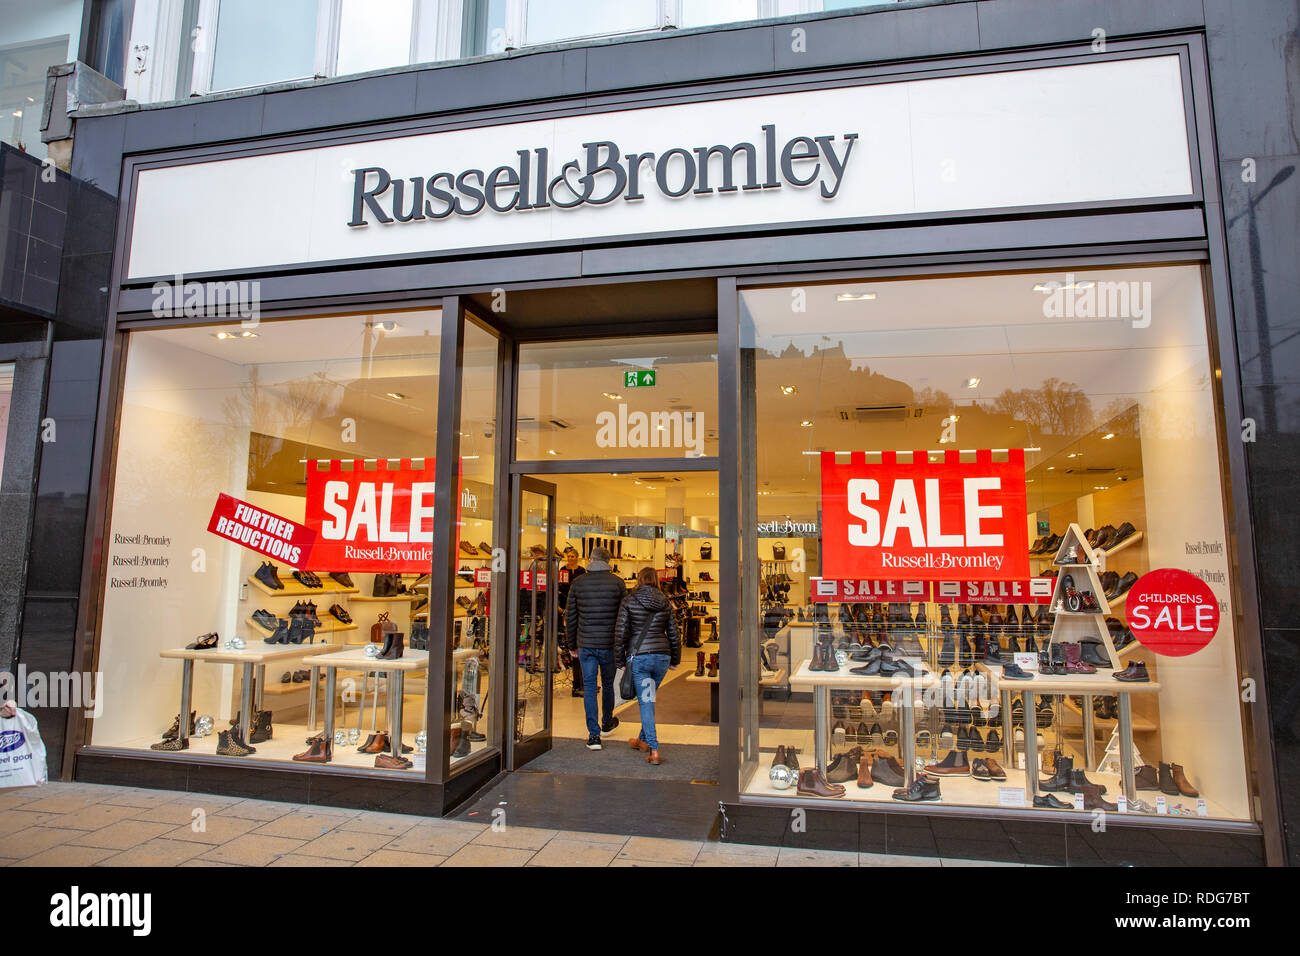 Russell and Bromley shoe store shop